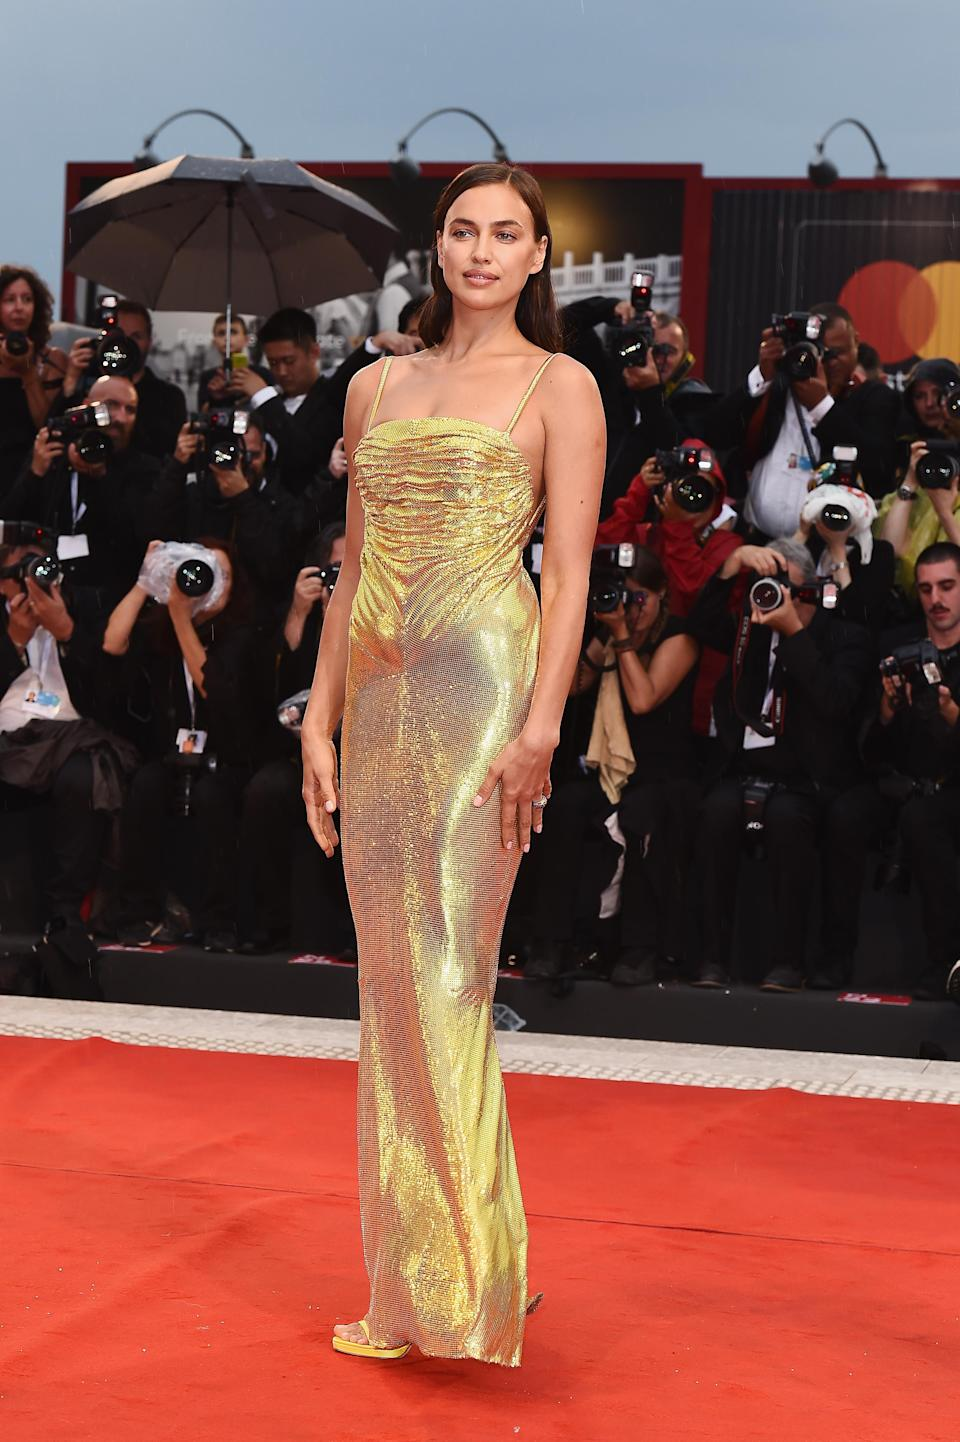 <p>Bradley Cooper's model partner slipped into a gold, shiny Versace dress for the premiere of his film. <em>[Photo: Getty]</em> </p>